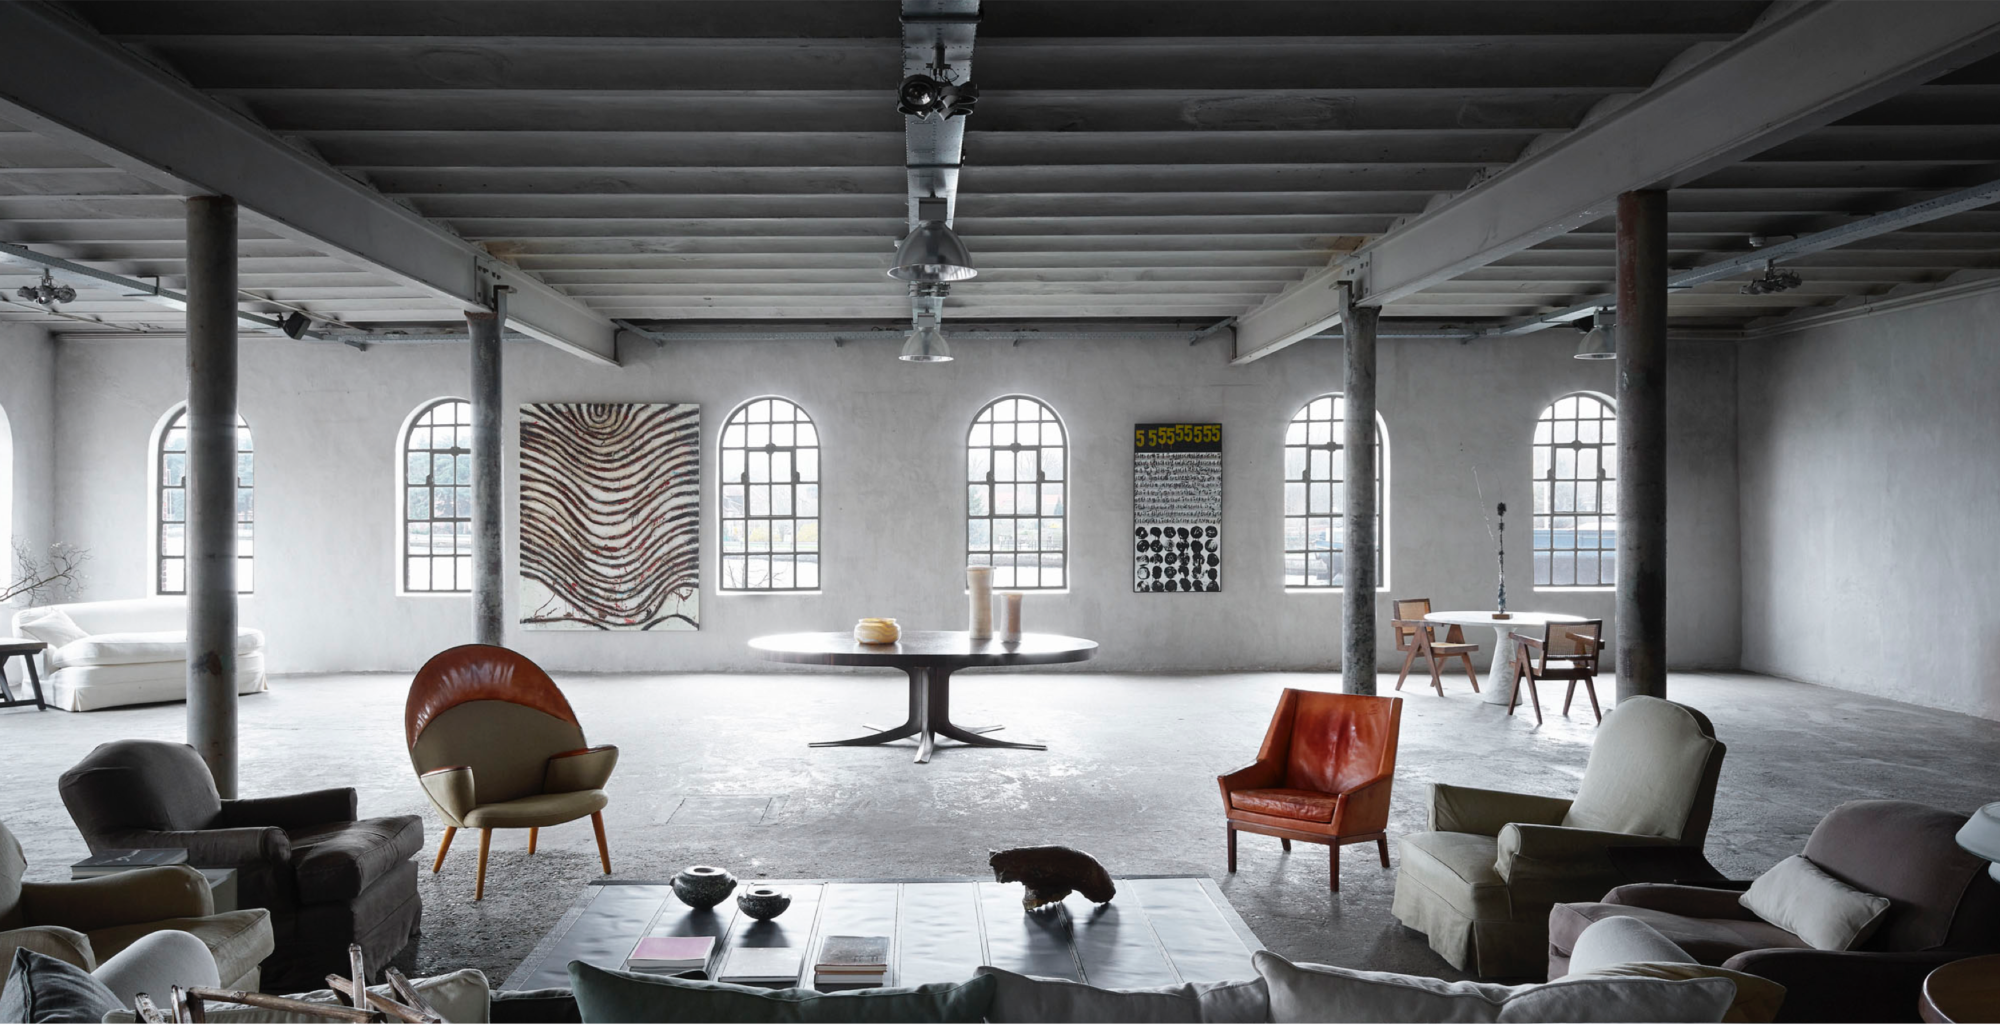 The Antiquaire Studio Spaces At Kanaal, Which Are The Home Of Our Interiors  U0026 Design